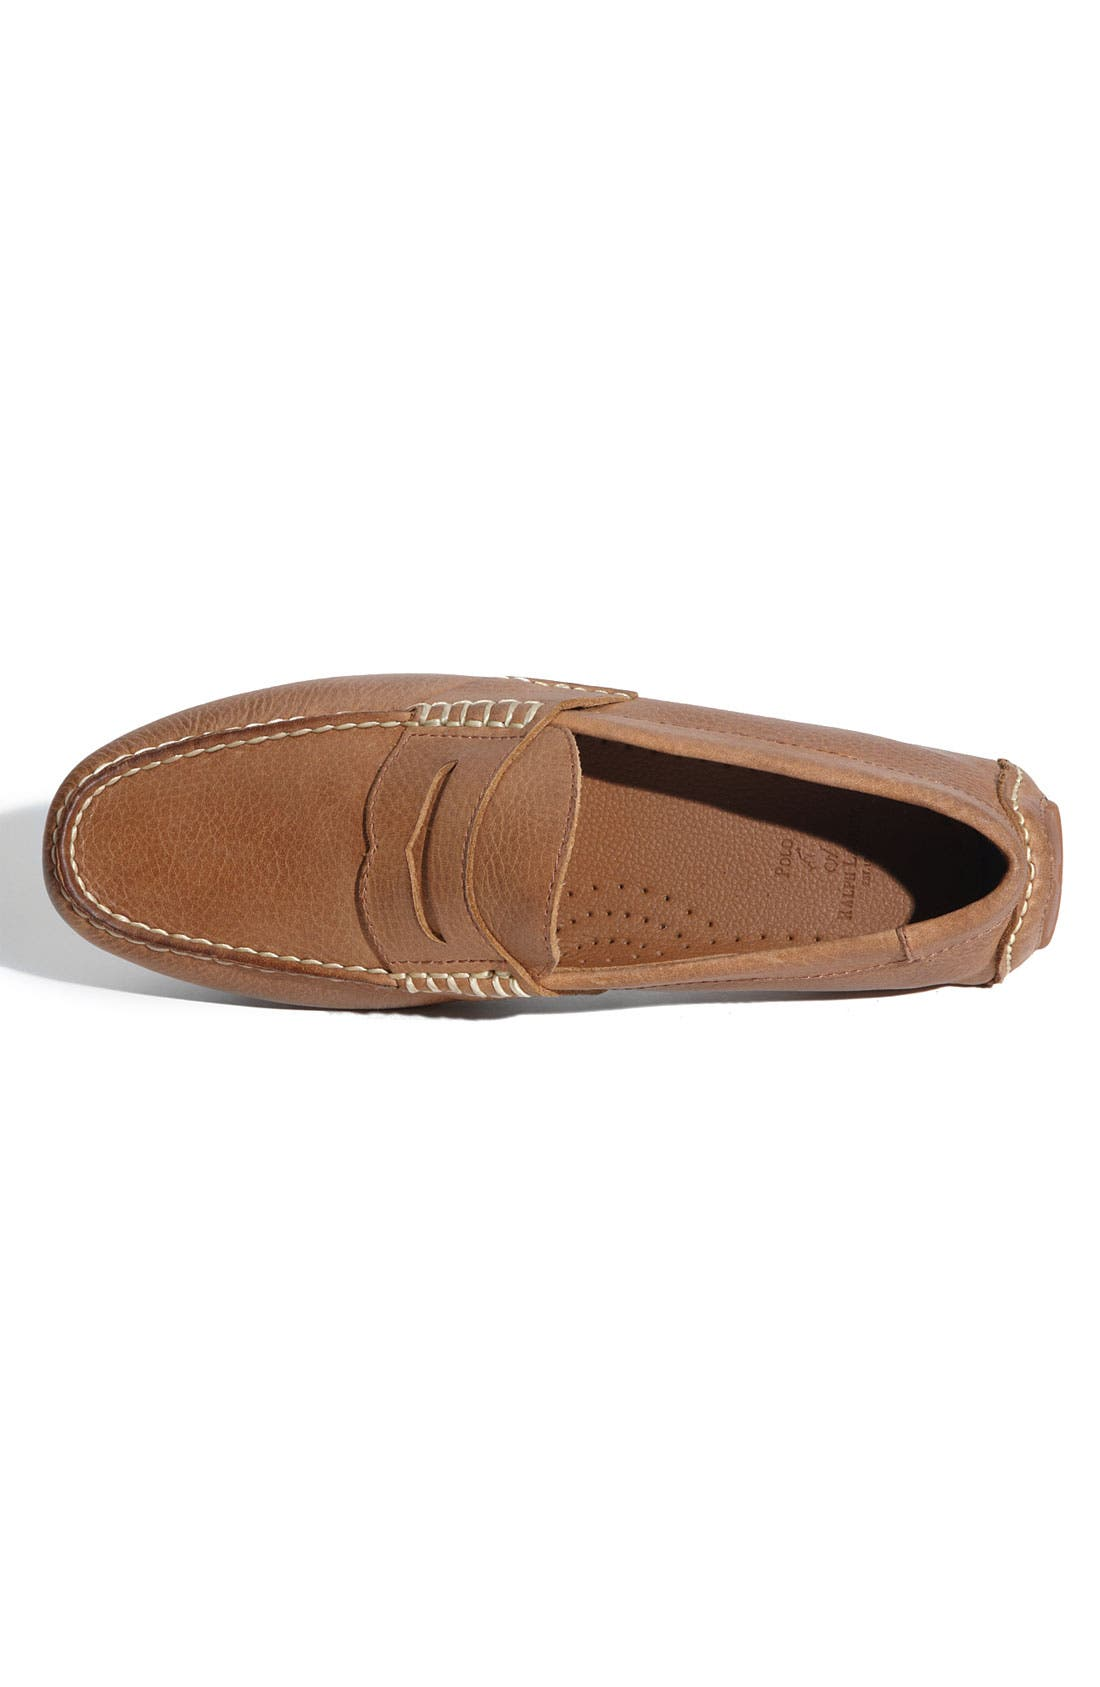 Alternate Image 2  - Polo Ralph Lauren 'Telly' Driving Loafer